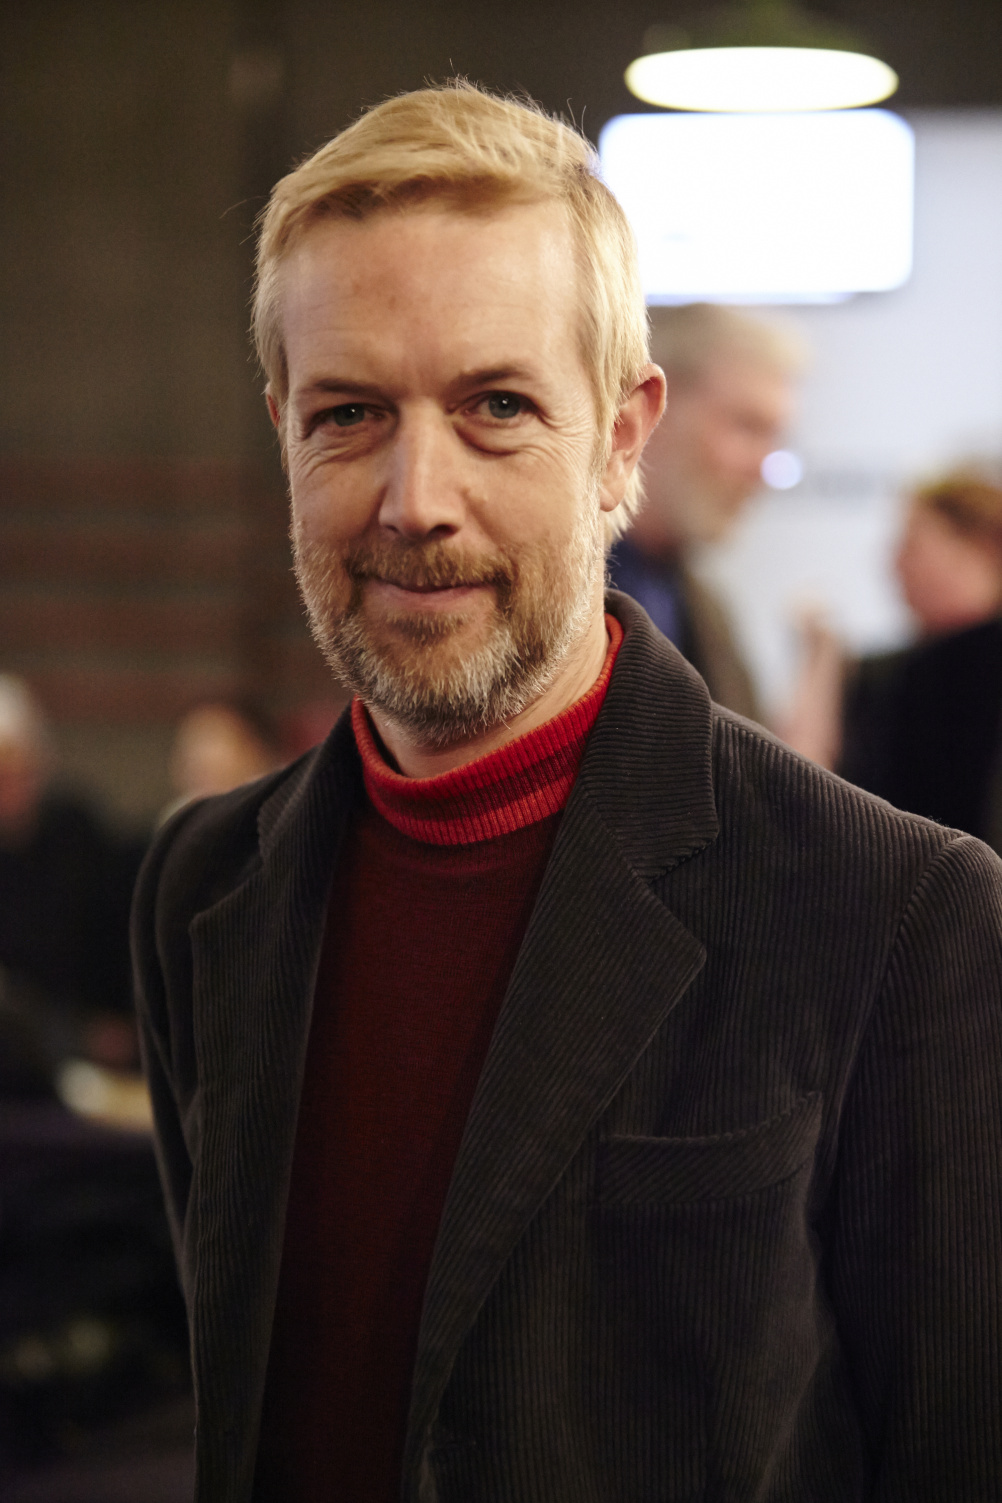 Fred Deakin, Professor of Interactive Design